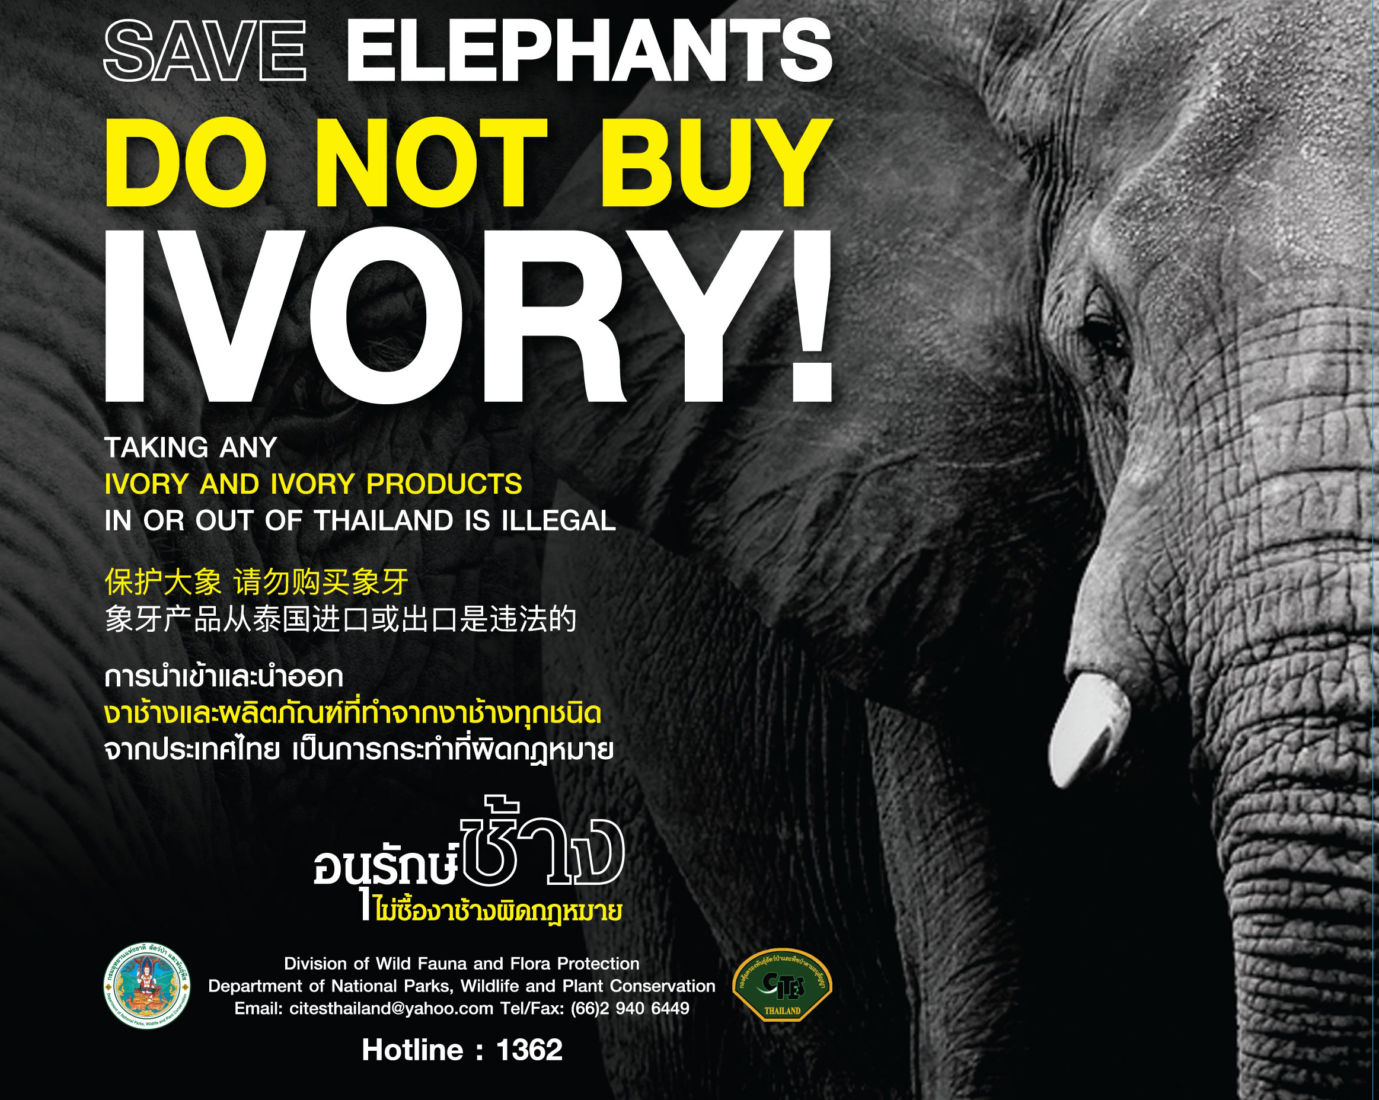 Thailand still a top destination for Chinese ivory buyers | News by Thaiger